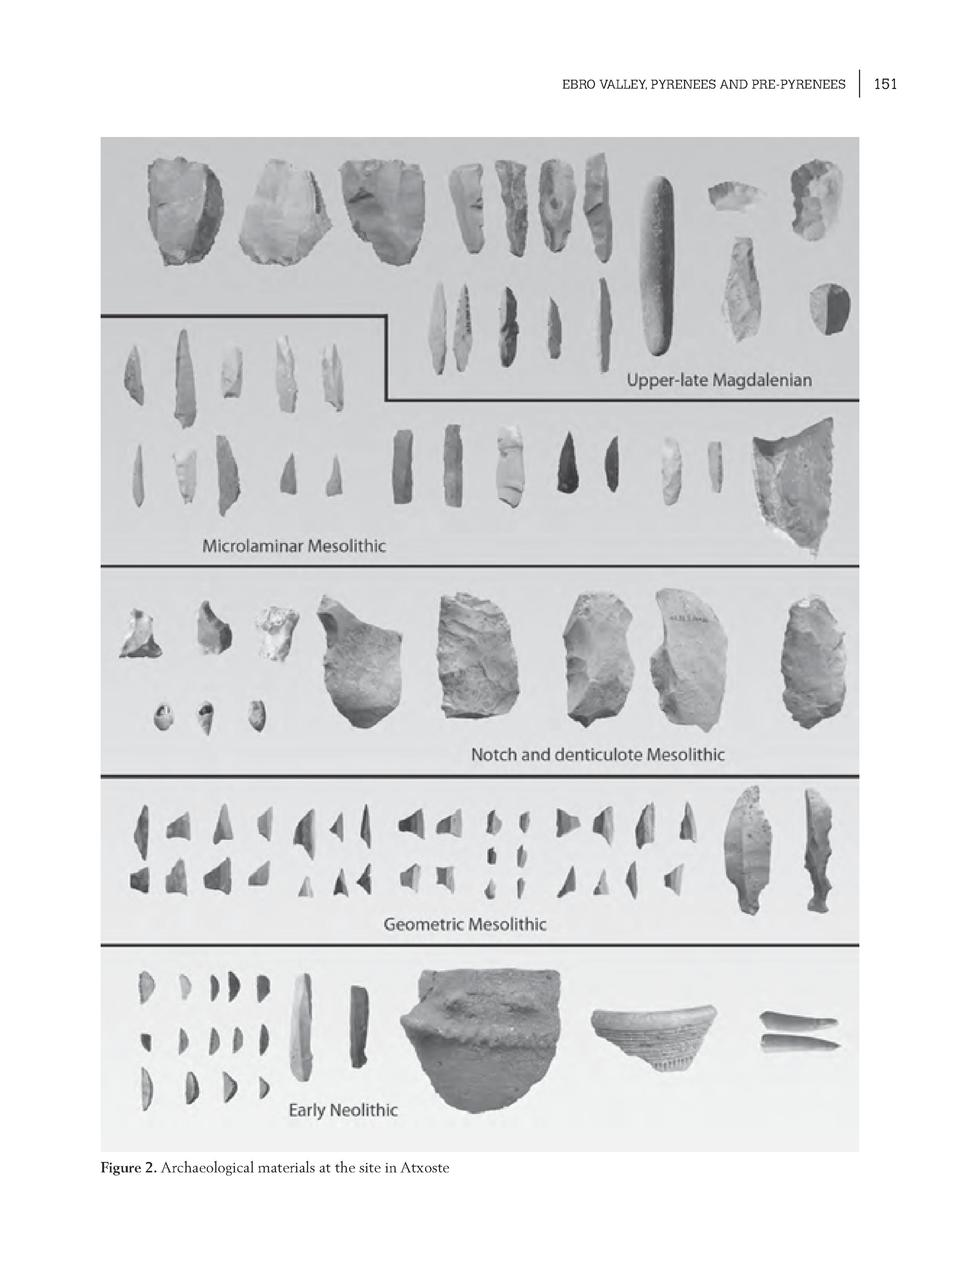 EBRO VALLEY, PYRENEES AND PRE-PYRENEES  Figure 2. Archaeological materials at the site in Atxoste  151